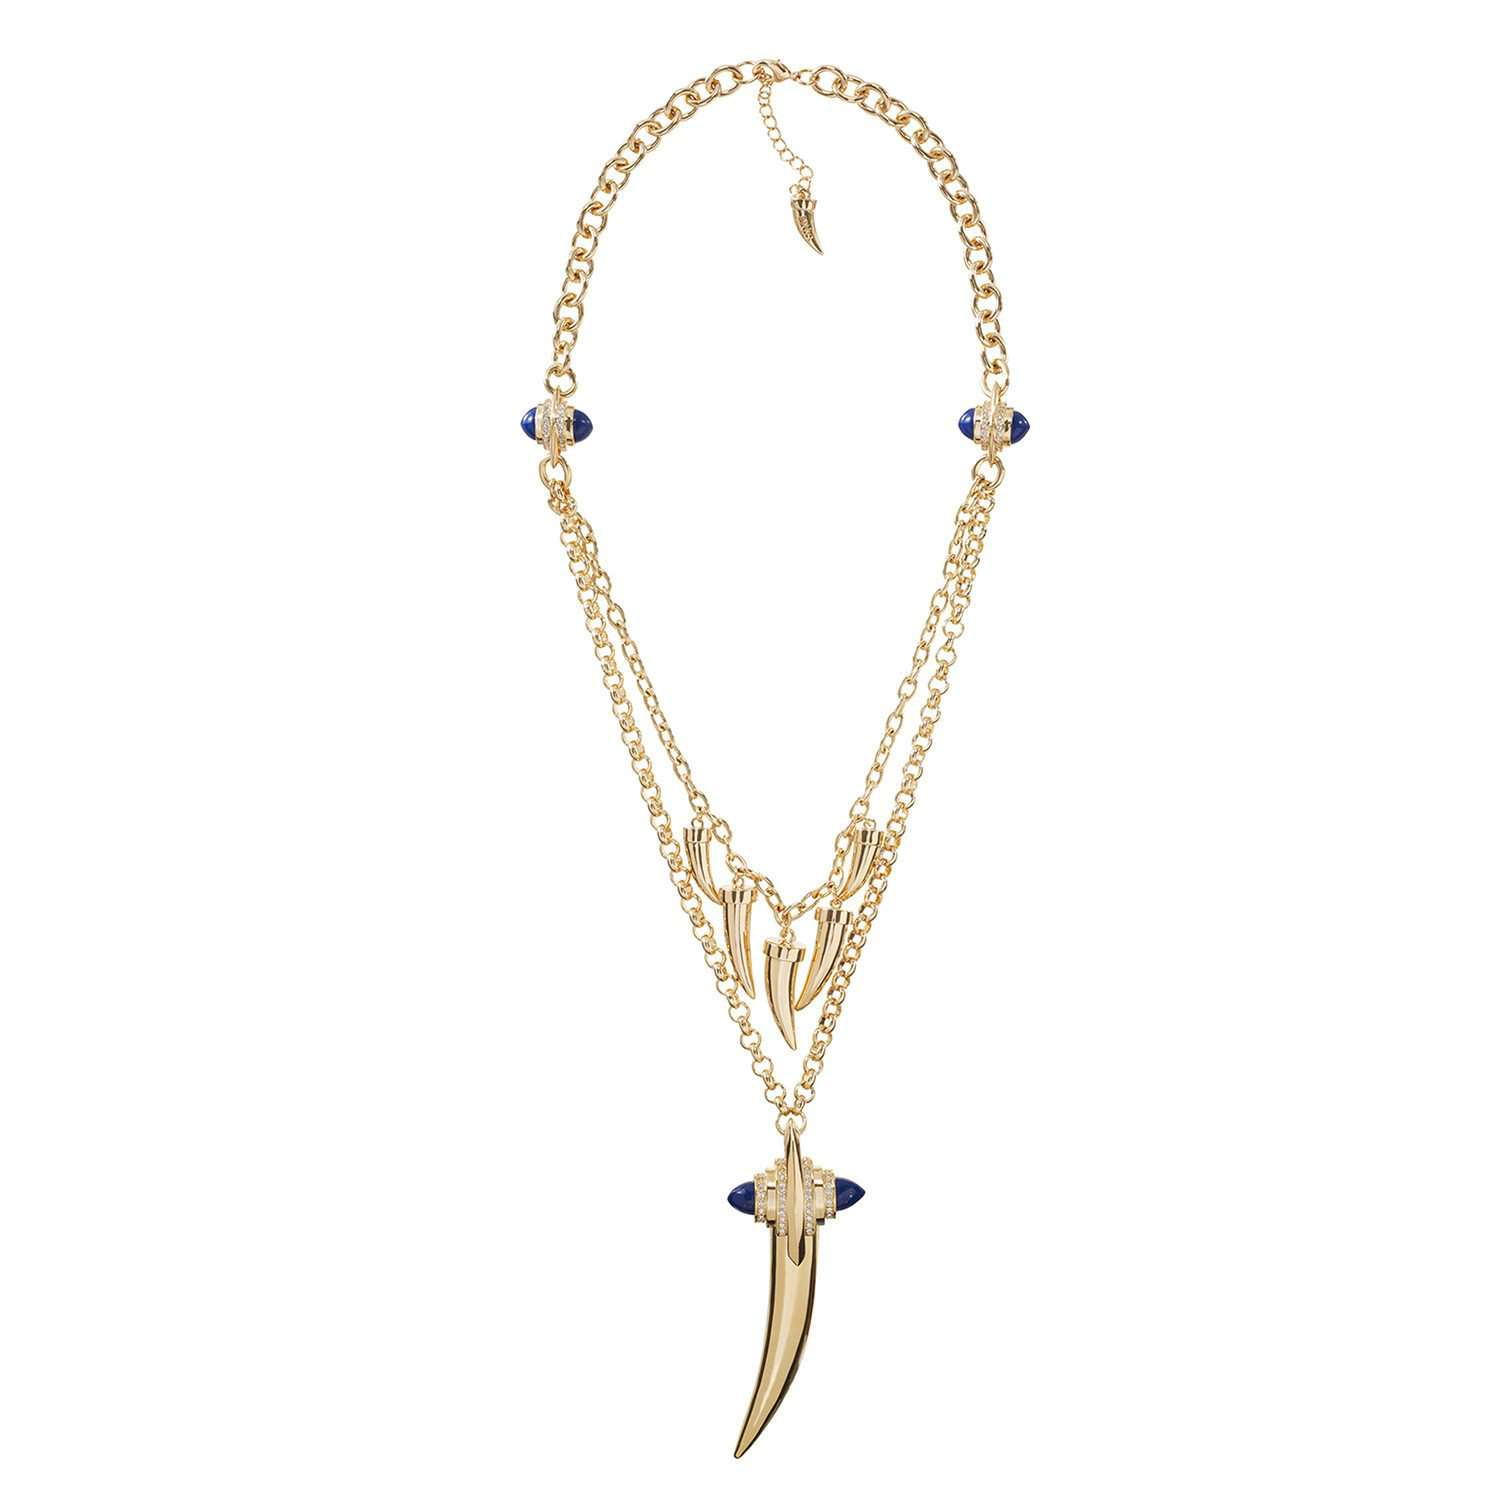 Jazz glitz two-layered necklace